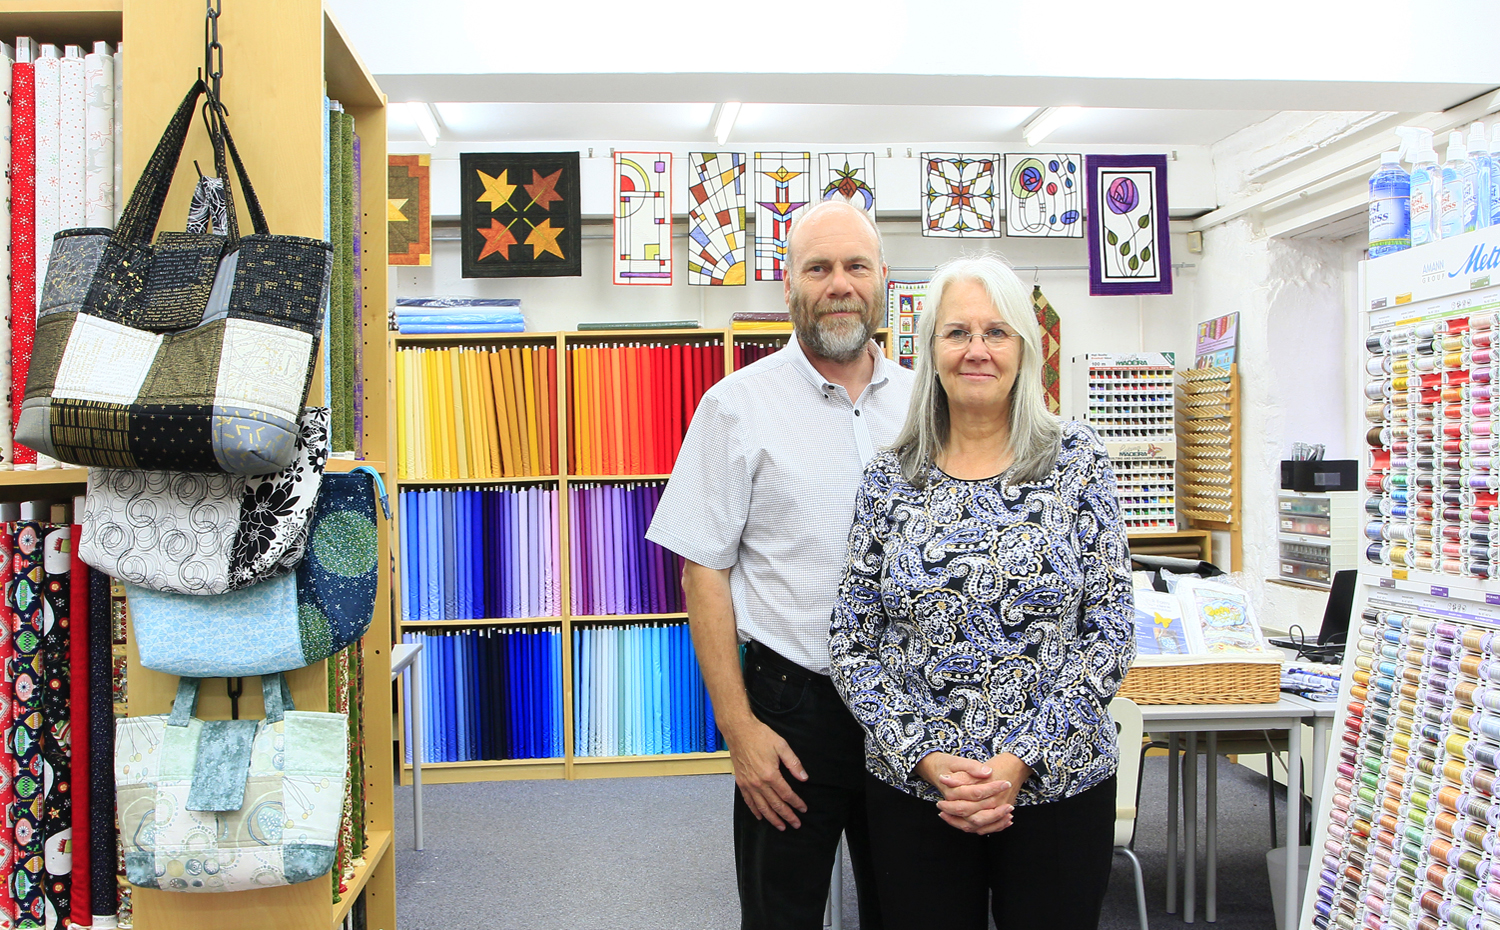 Ann and Darren Mayner are the owners of Quiltessential in Cromford Derbyshire